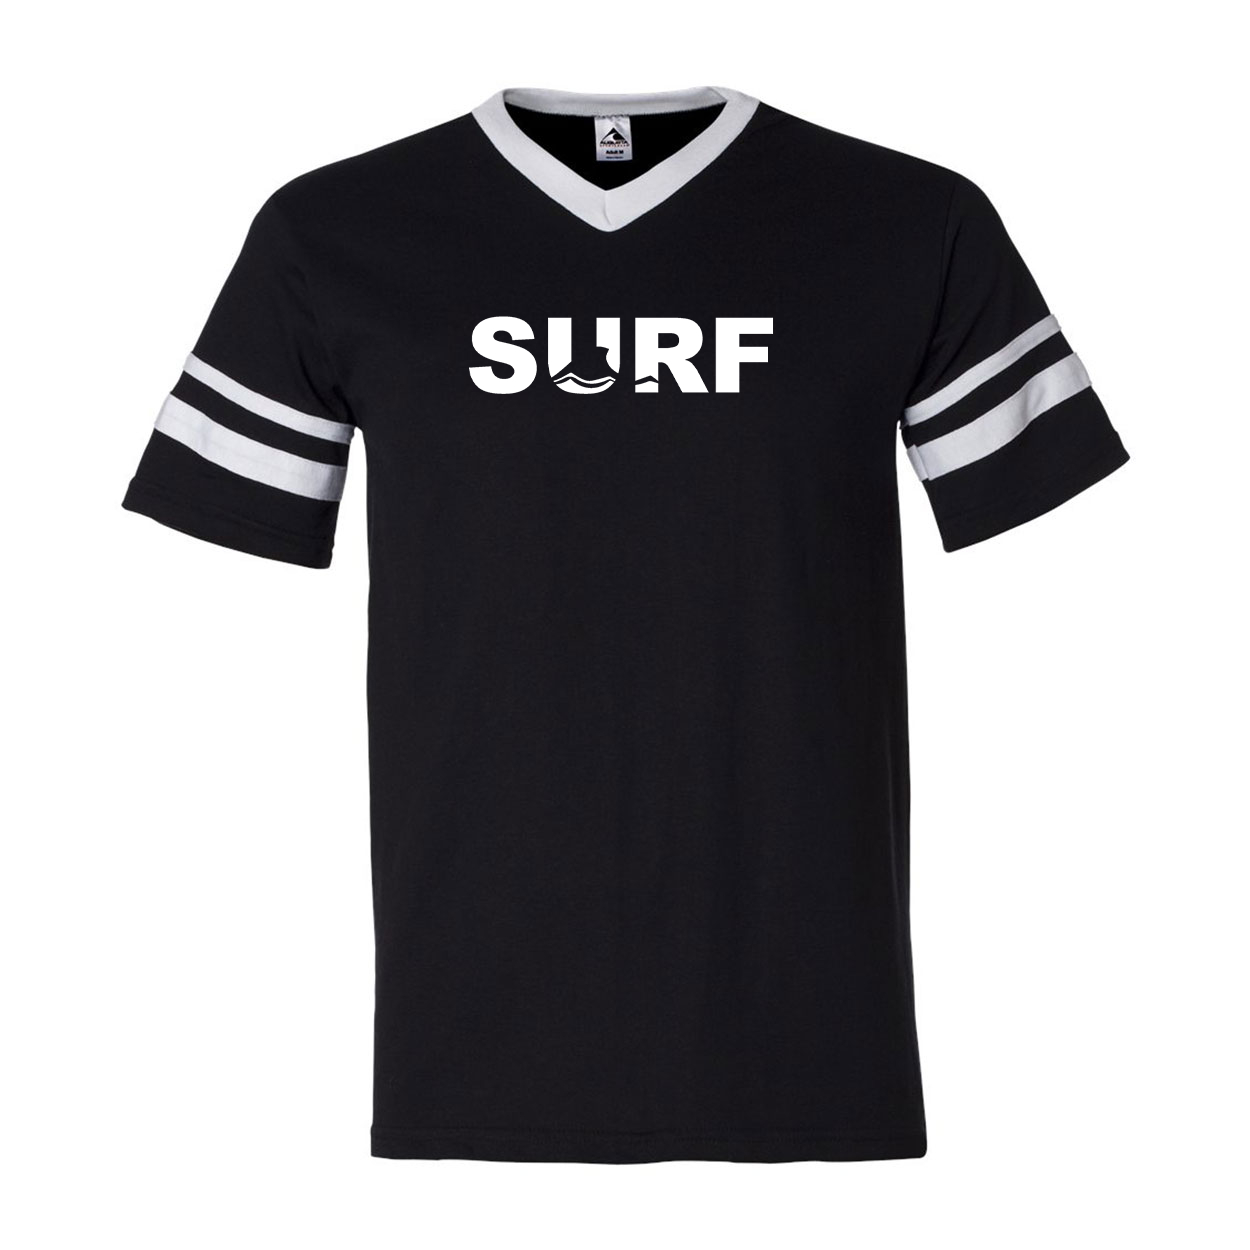 Surf Wave Logo Classic Premium Striped Jersey T-Shirt Black/White (White Logo)